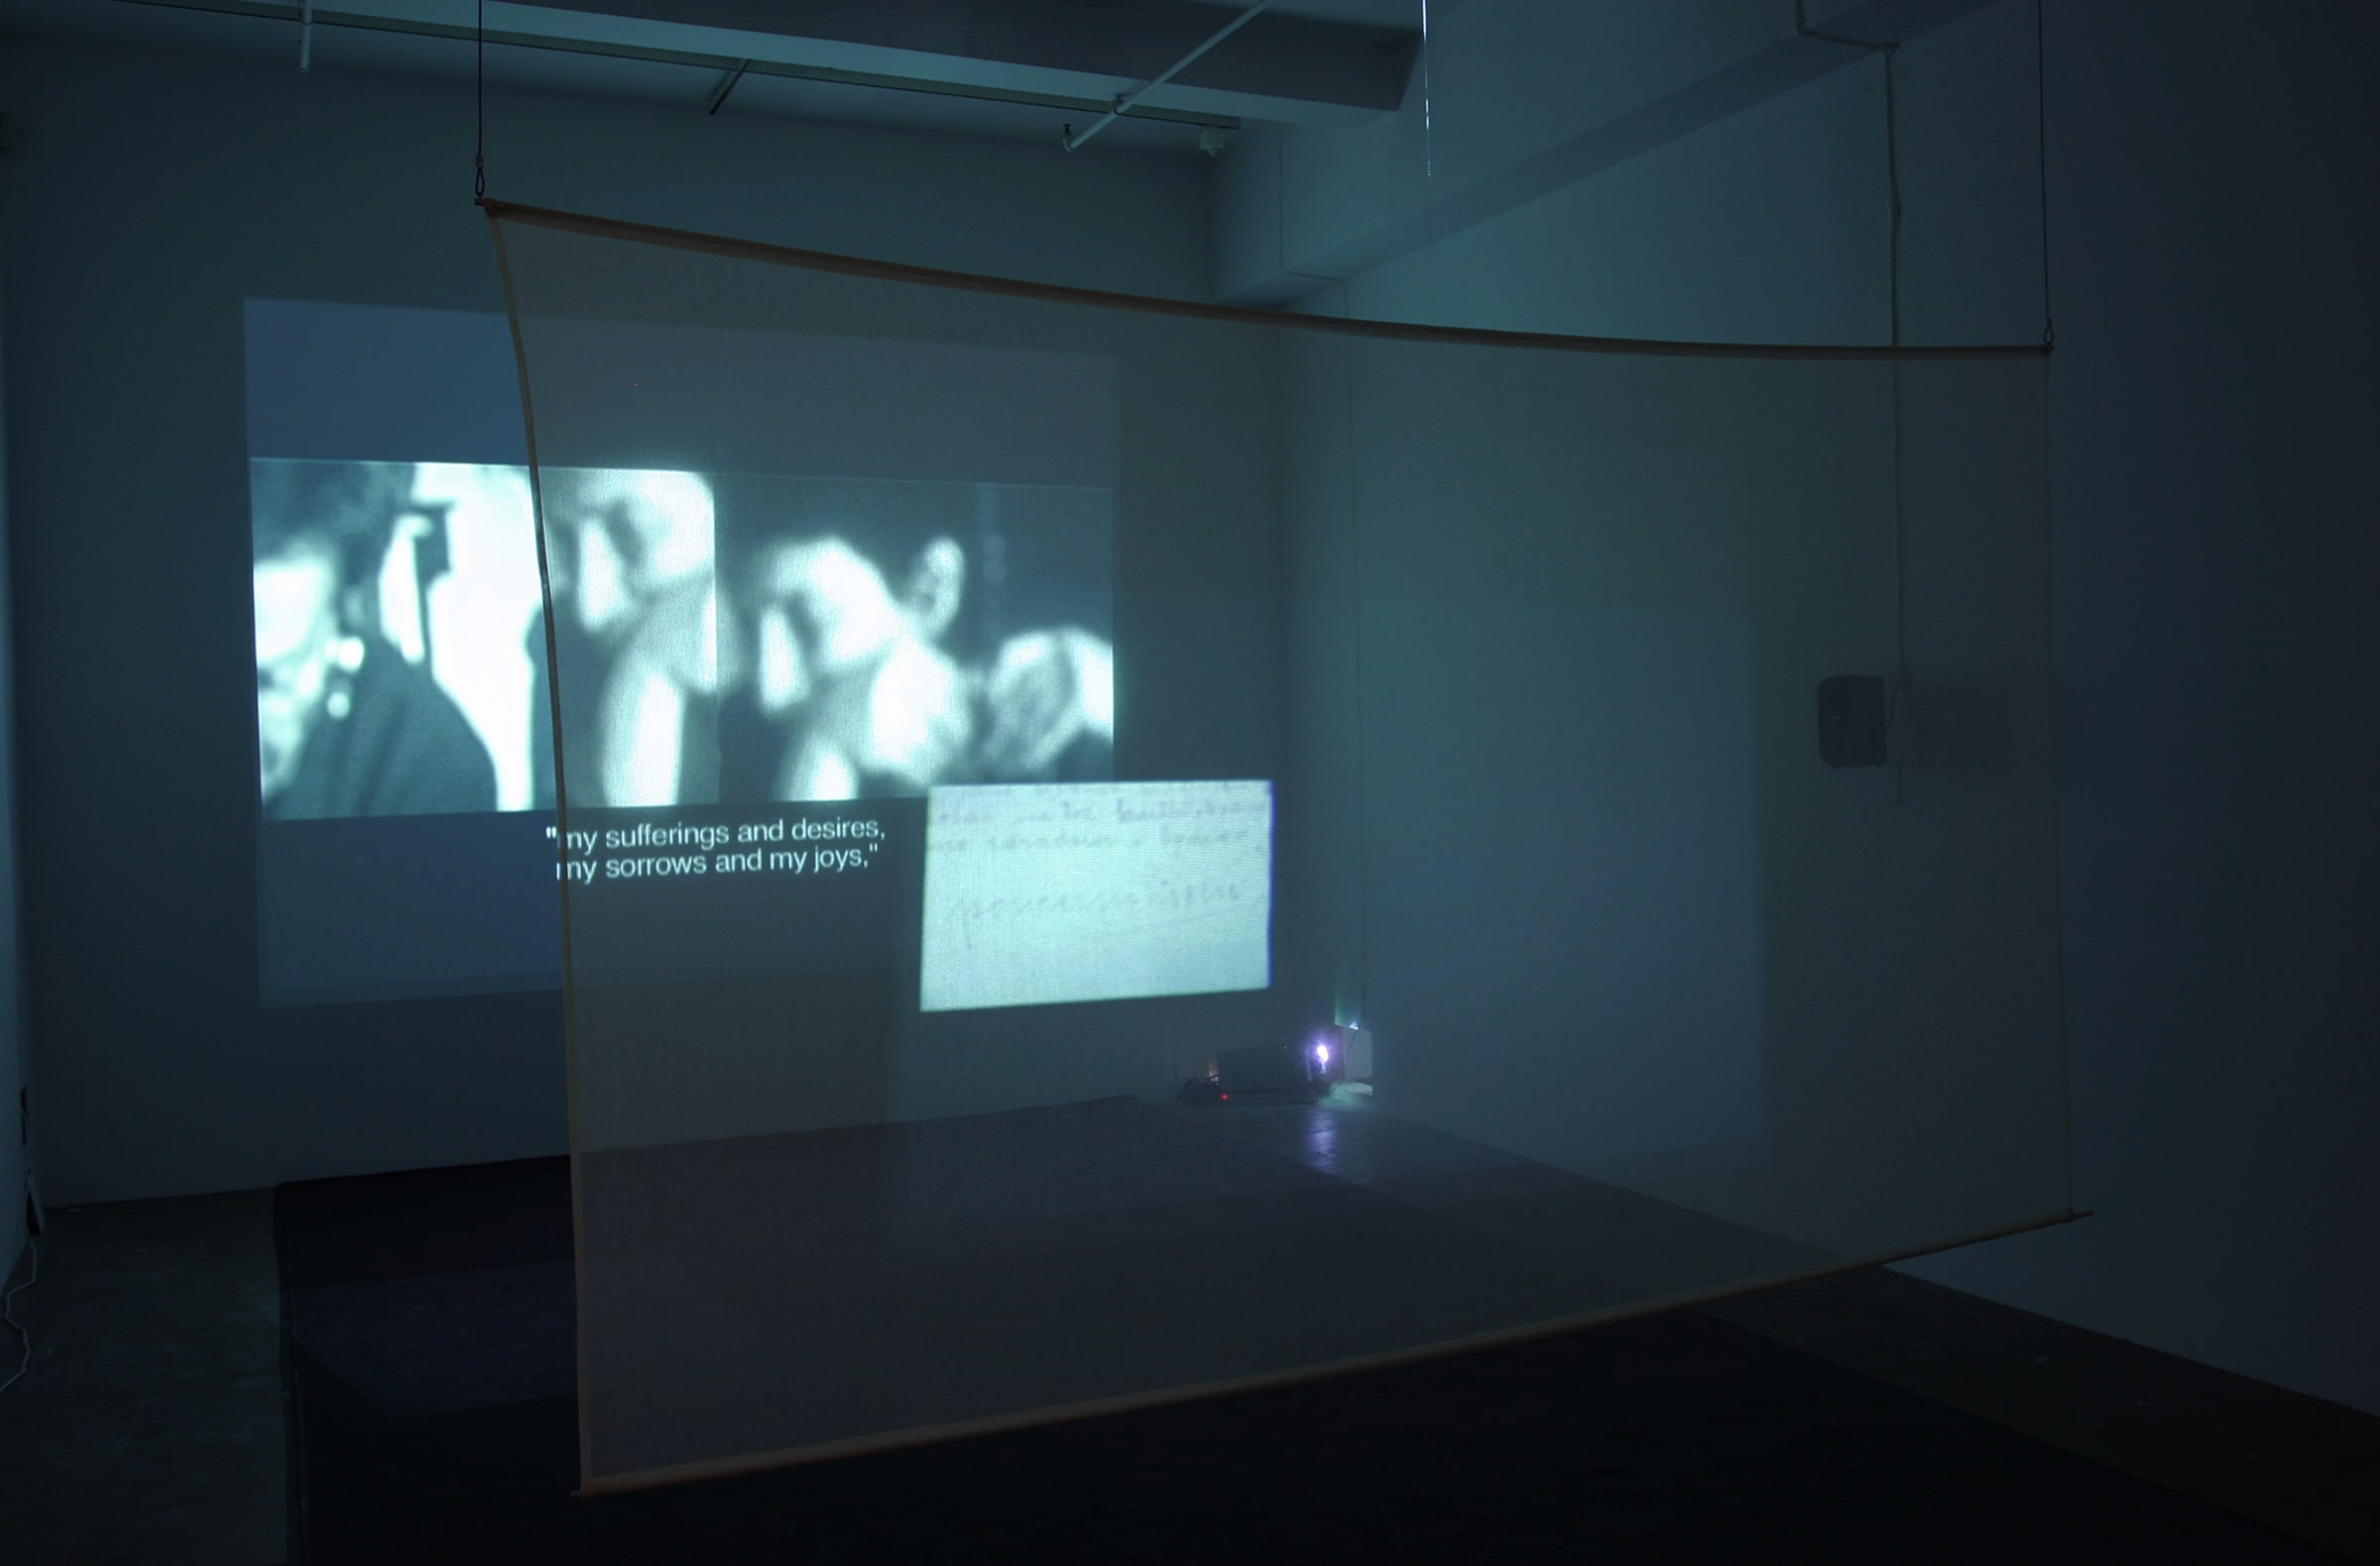 An image of 2 people with subtitles is projected through a transparent piece of fabric onto the wall.